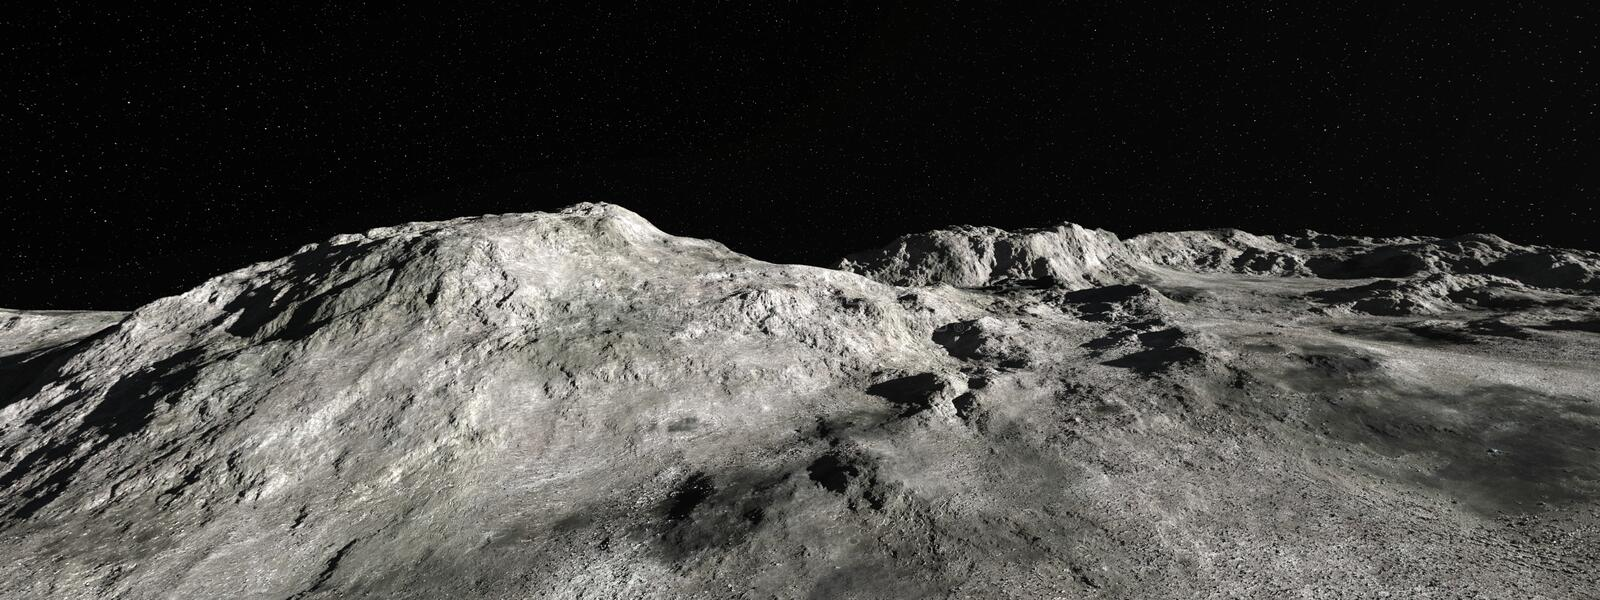 Moon Lunar Landscape Panorama Background royalty free stock photo